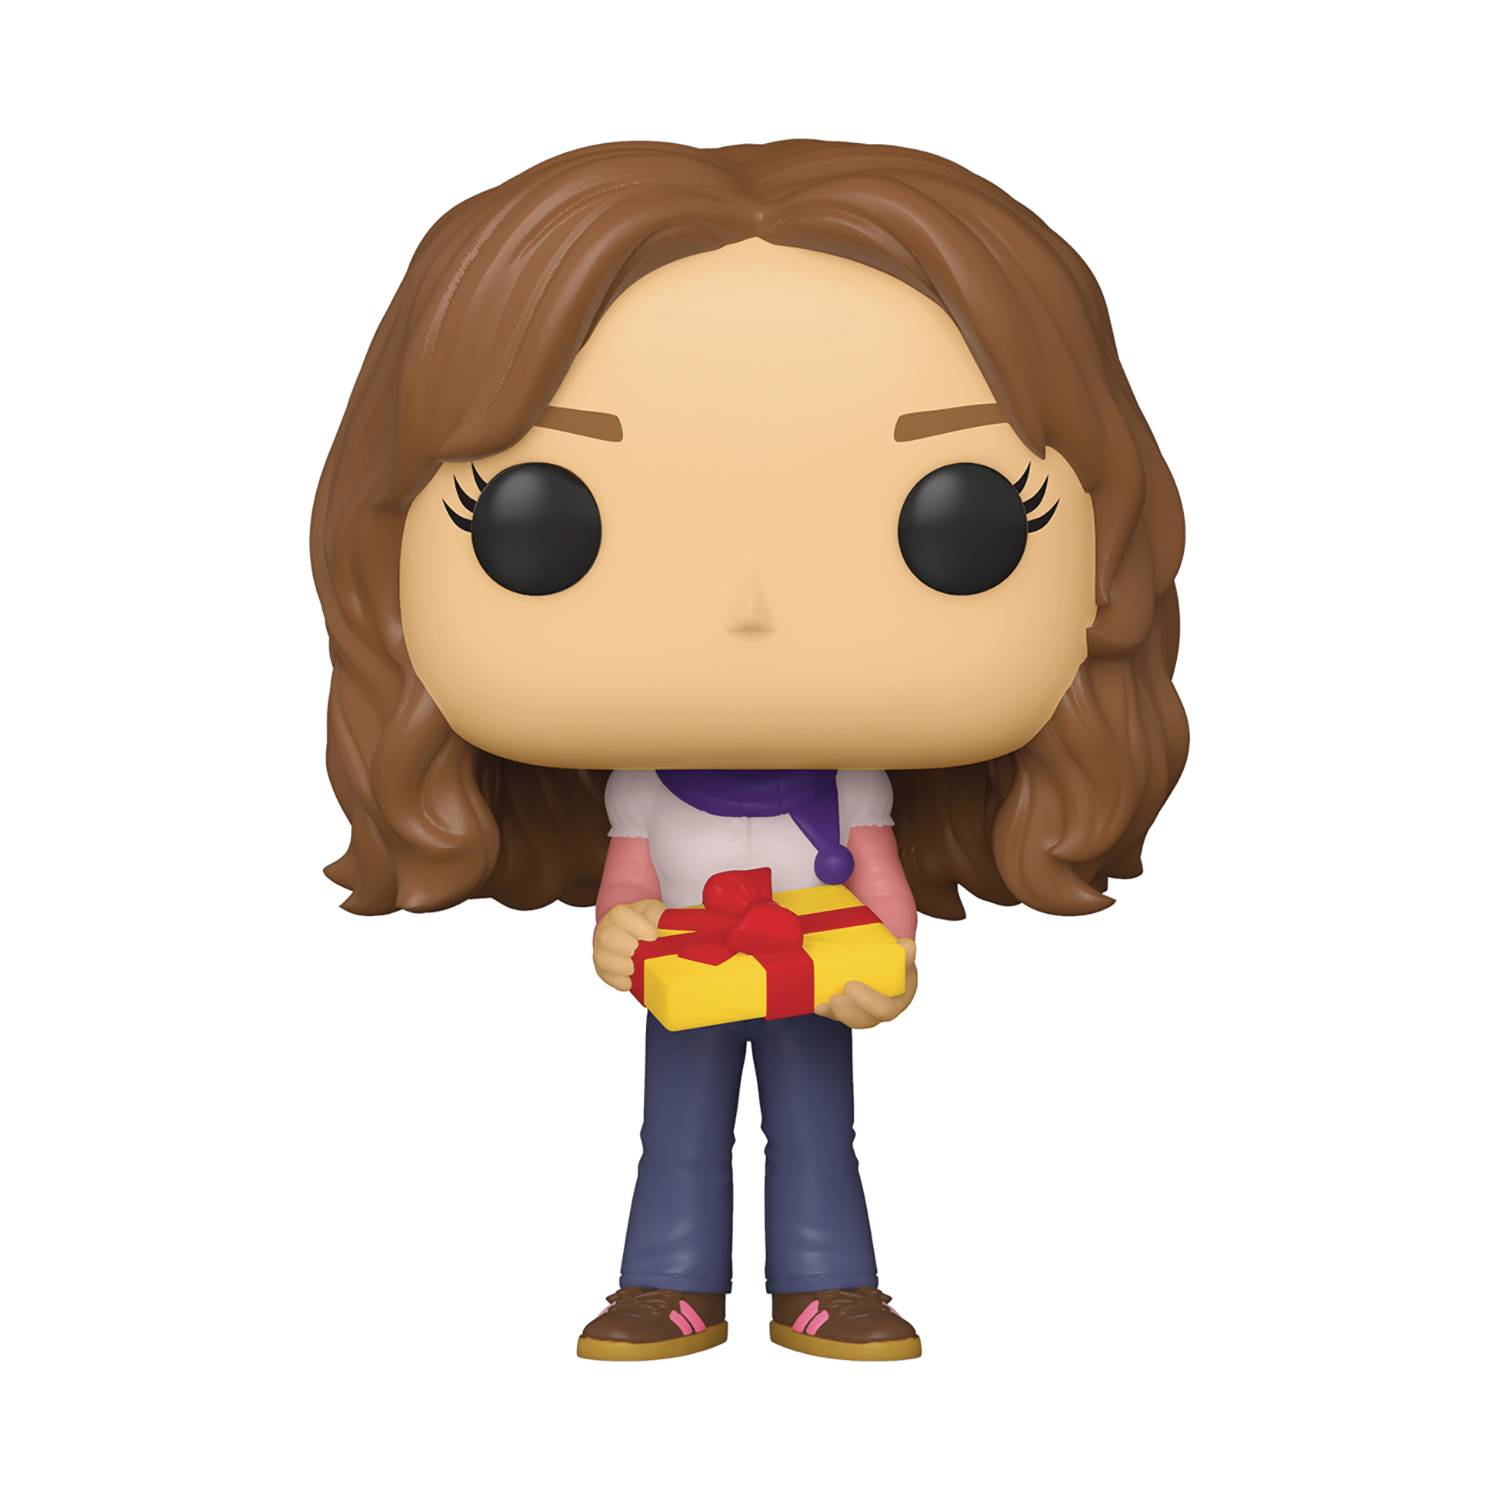 POP HP HOLIDAY HERMIONE VIN FIG